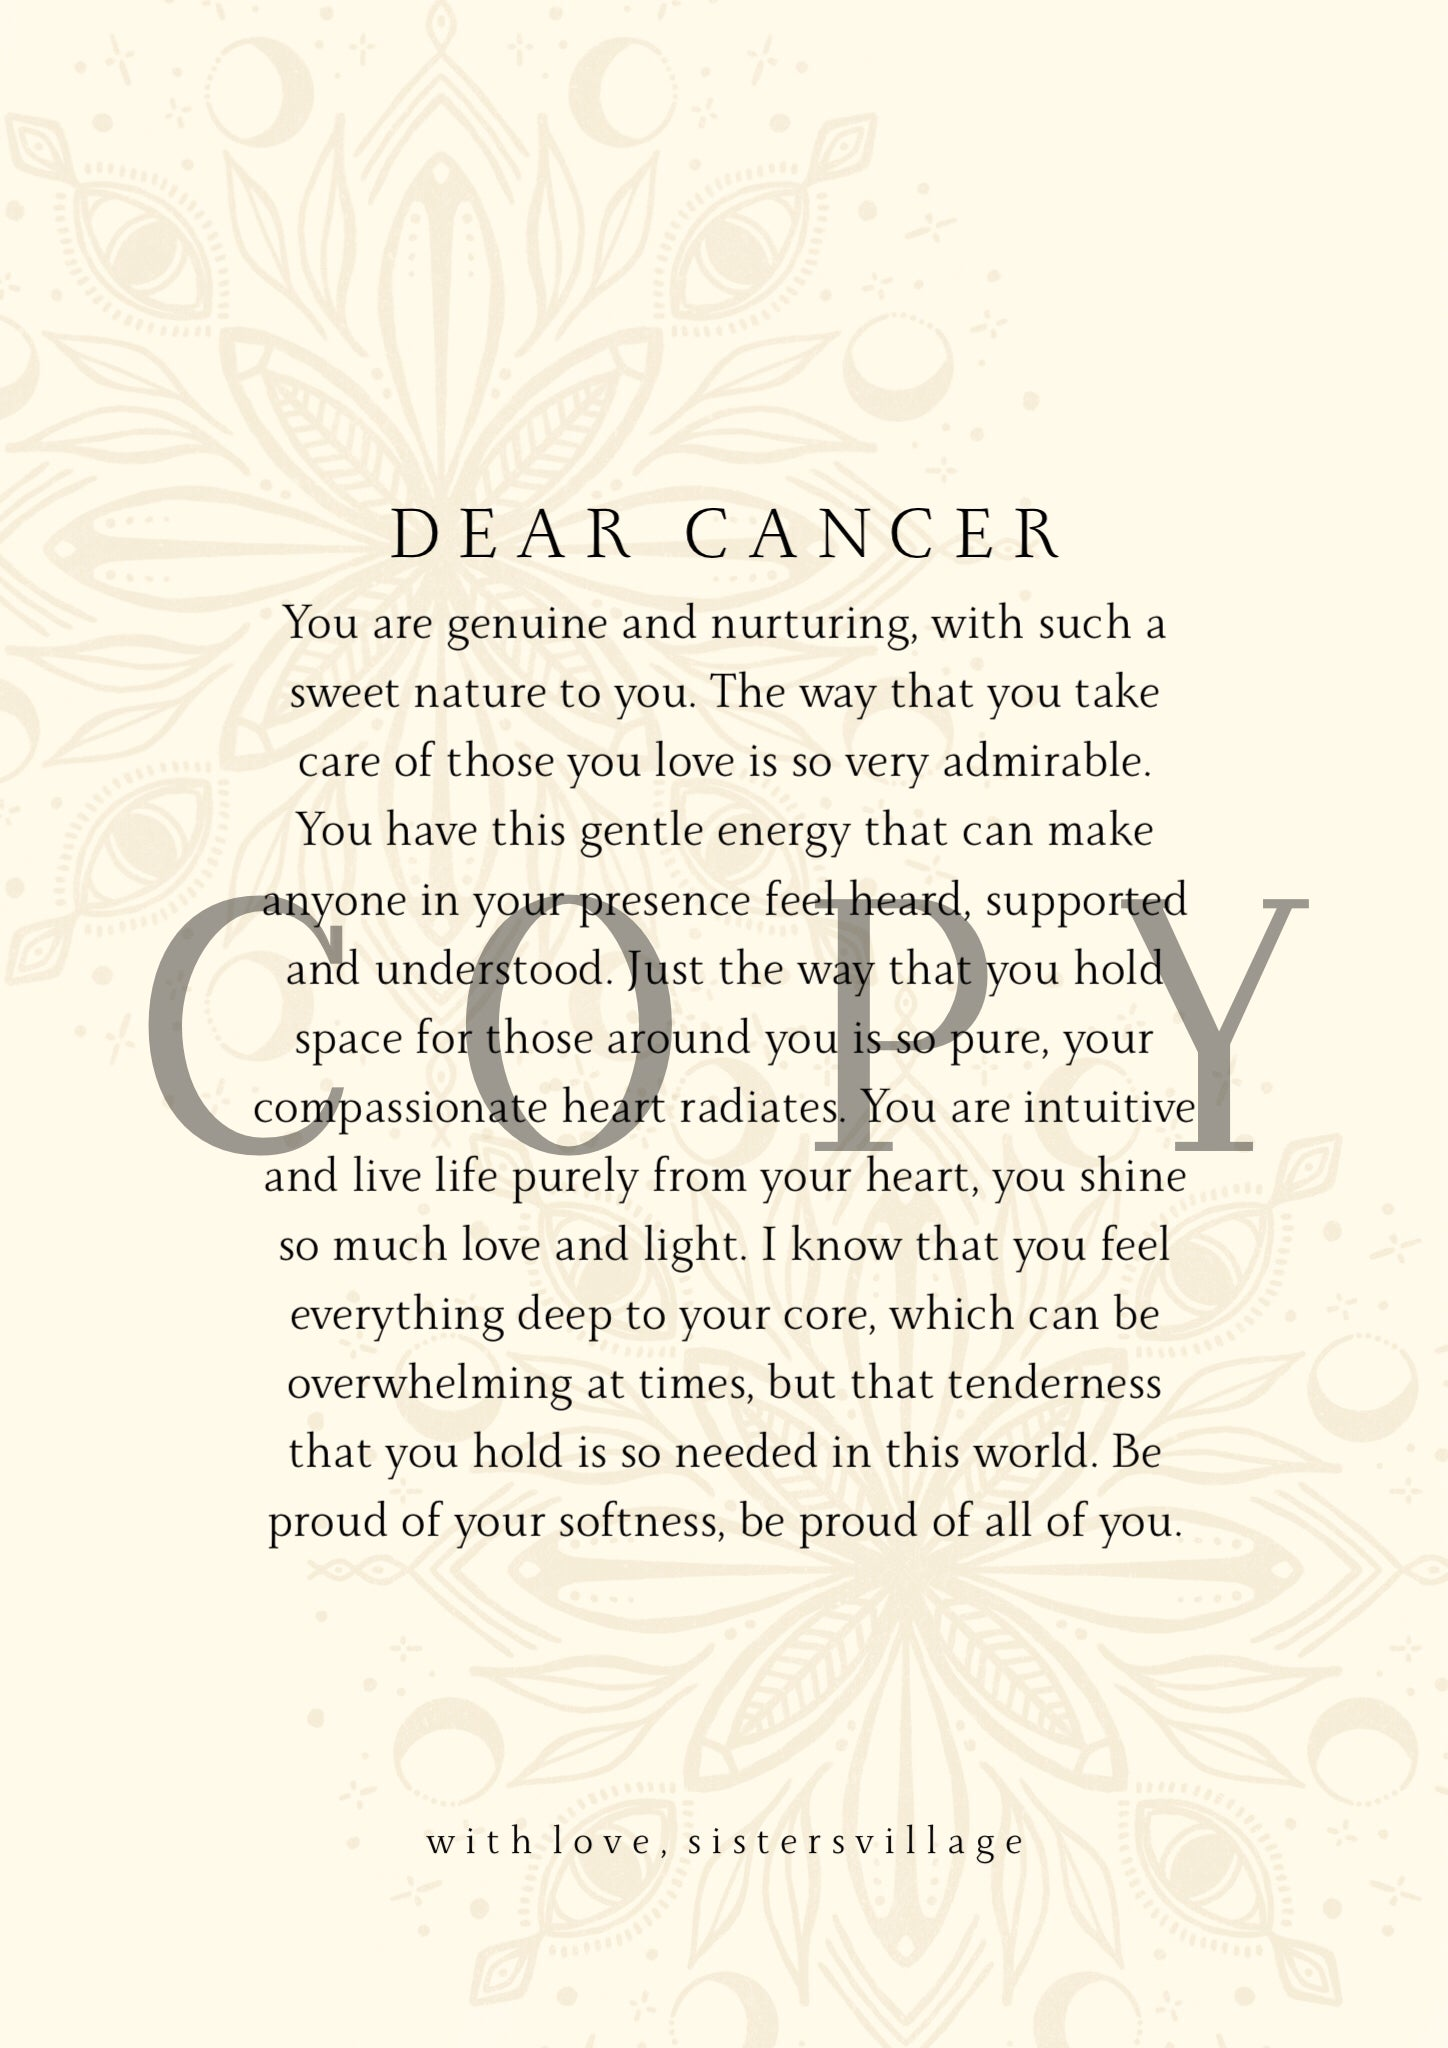 DEAR CANCER DIGITAL PRINT